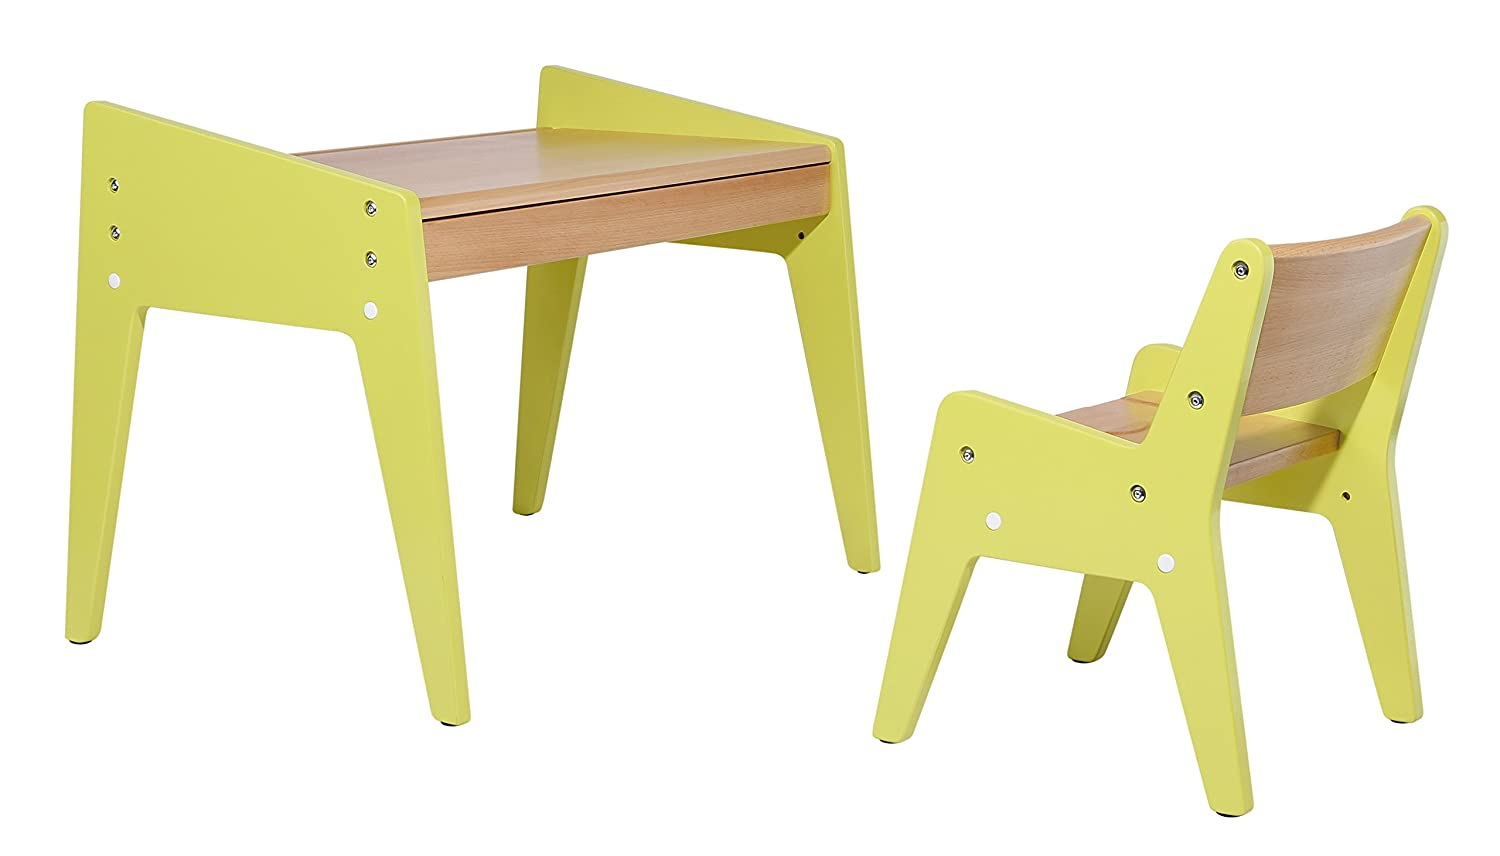 Wymo My First Adjustable Desk and Chair for Little Kids from 1 to 3 Years Old